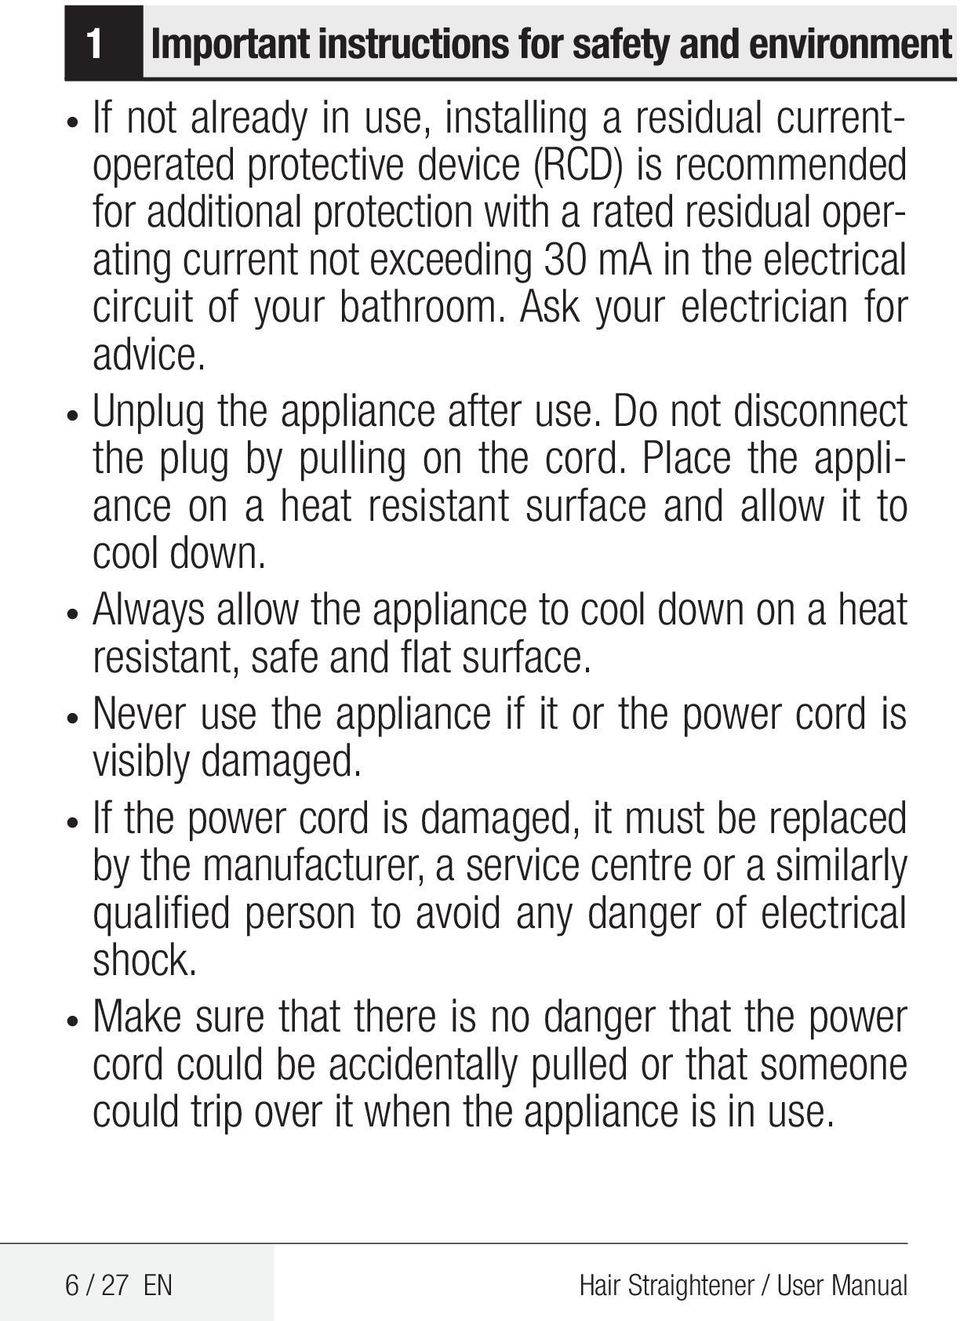 Place the appliance on a heat resistant surface and allow it to cool down. Always allow the appliance to cool down on a heat resistant, safe and flat surface.